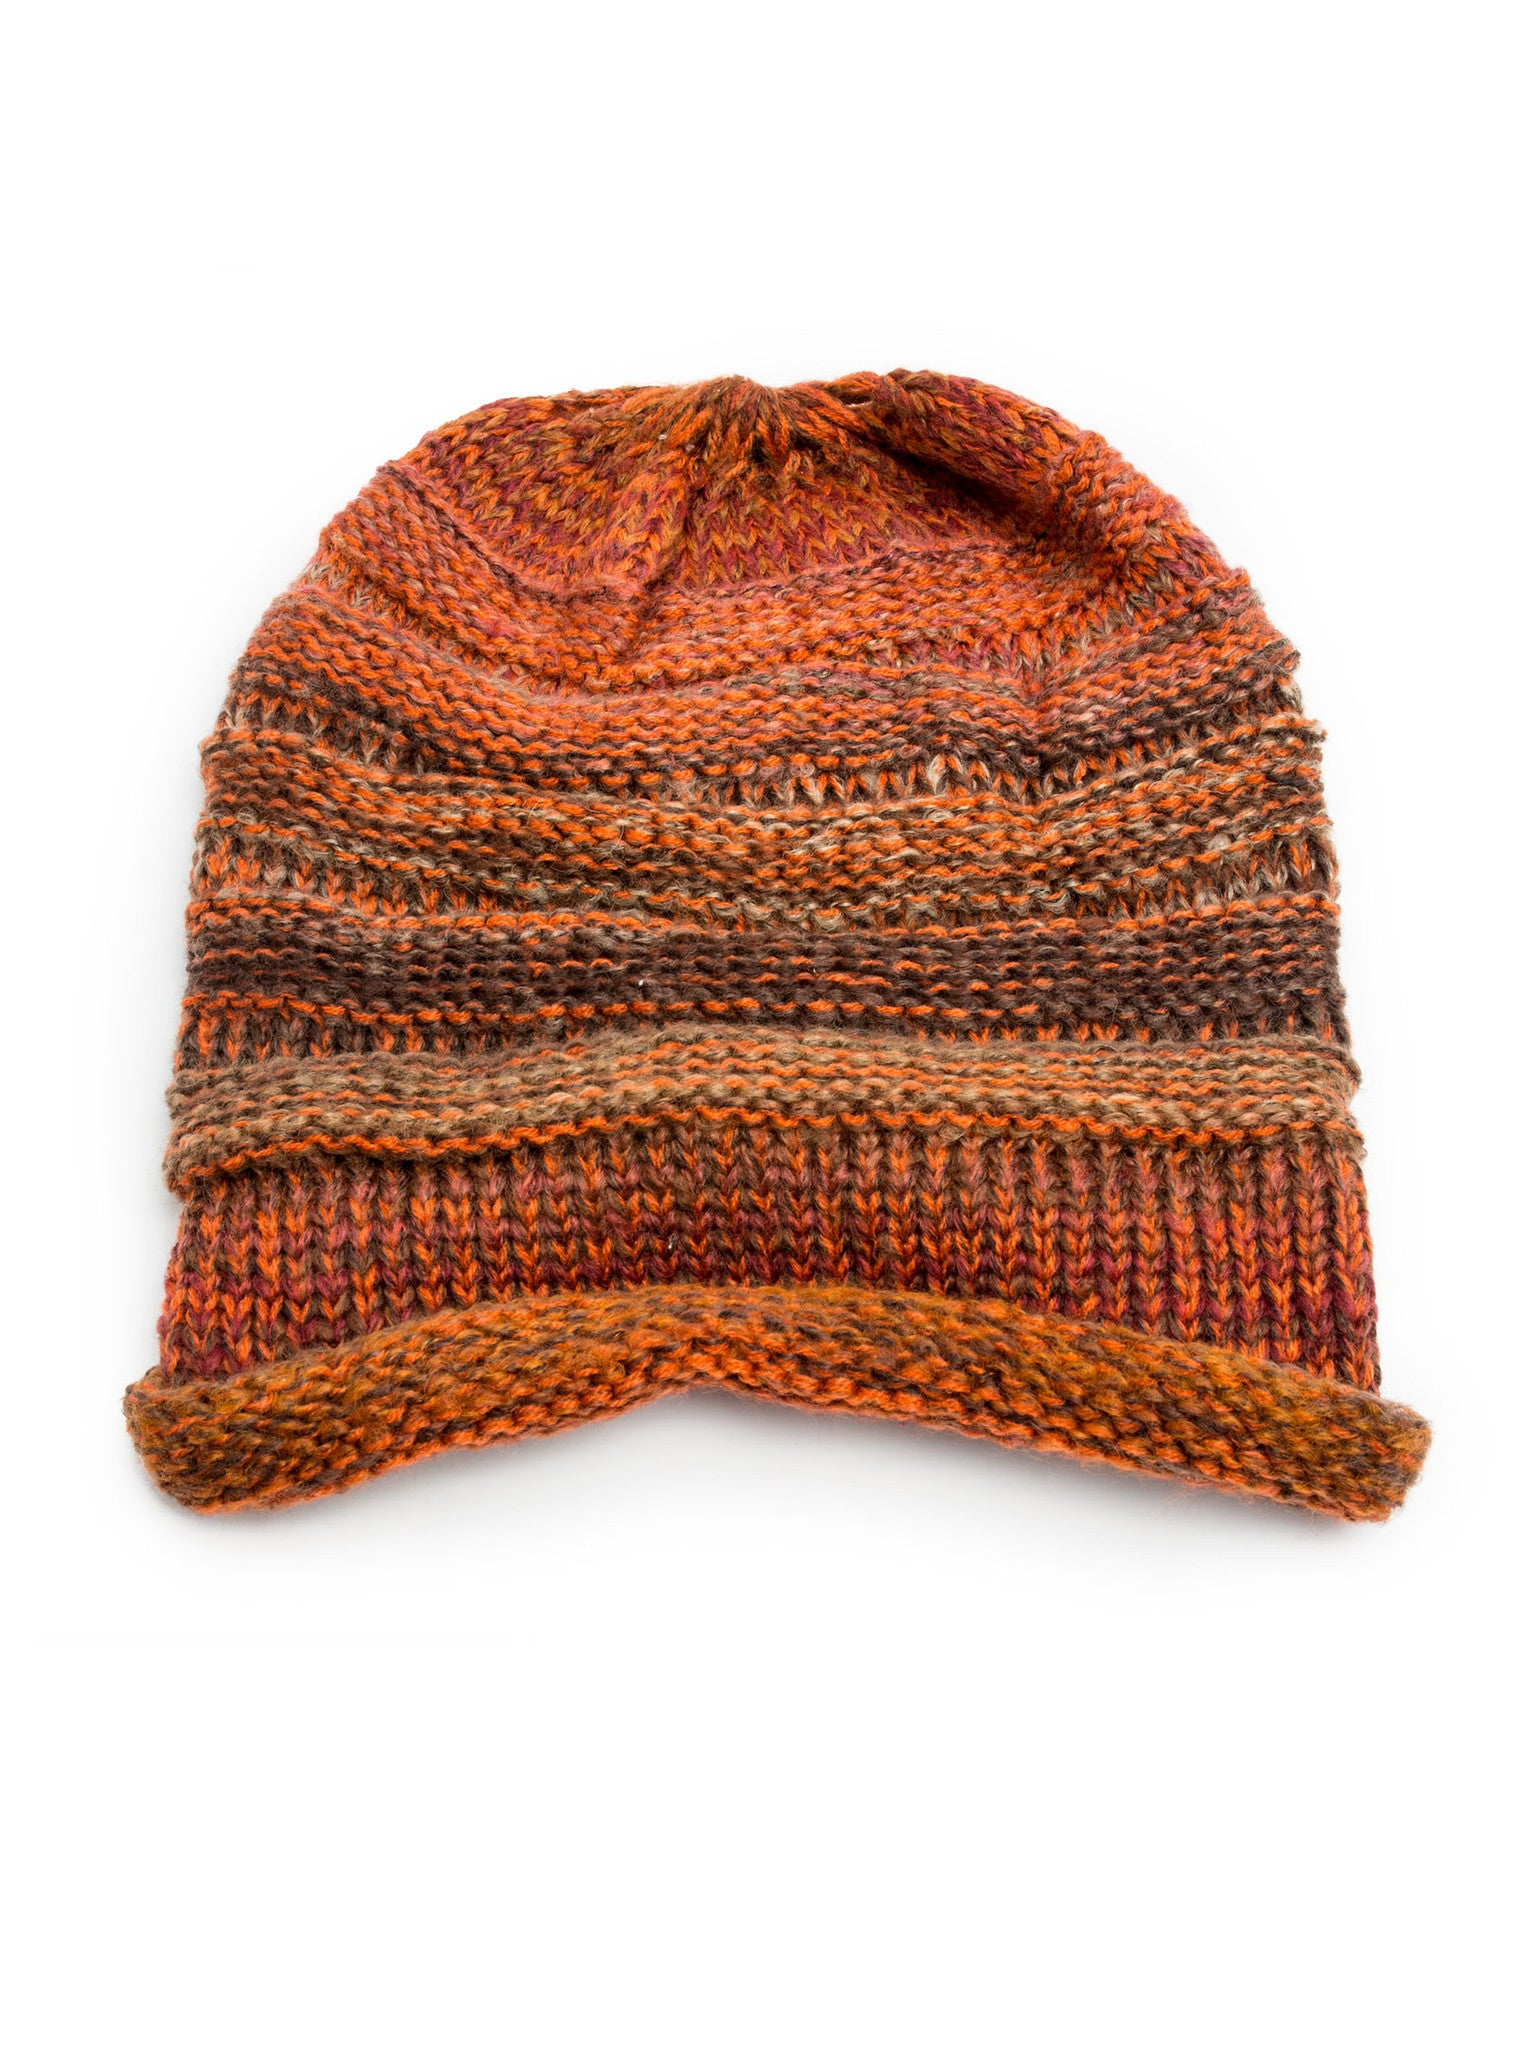 Hat - Aspen, Winter Knit Ombre Beanie -() Bohomonde  - 6